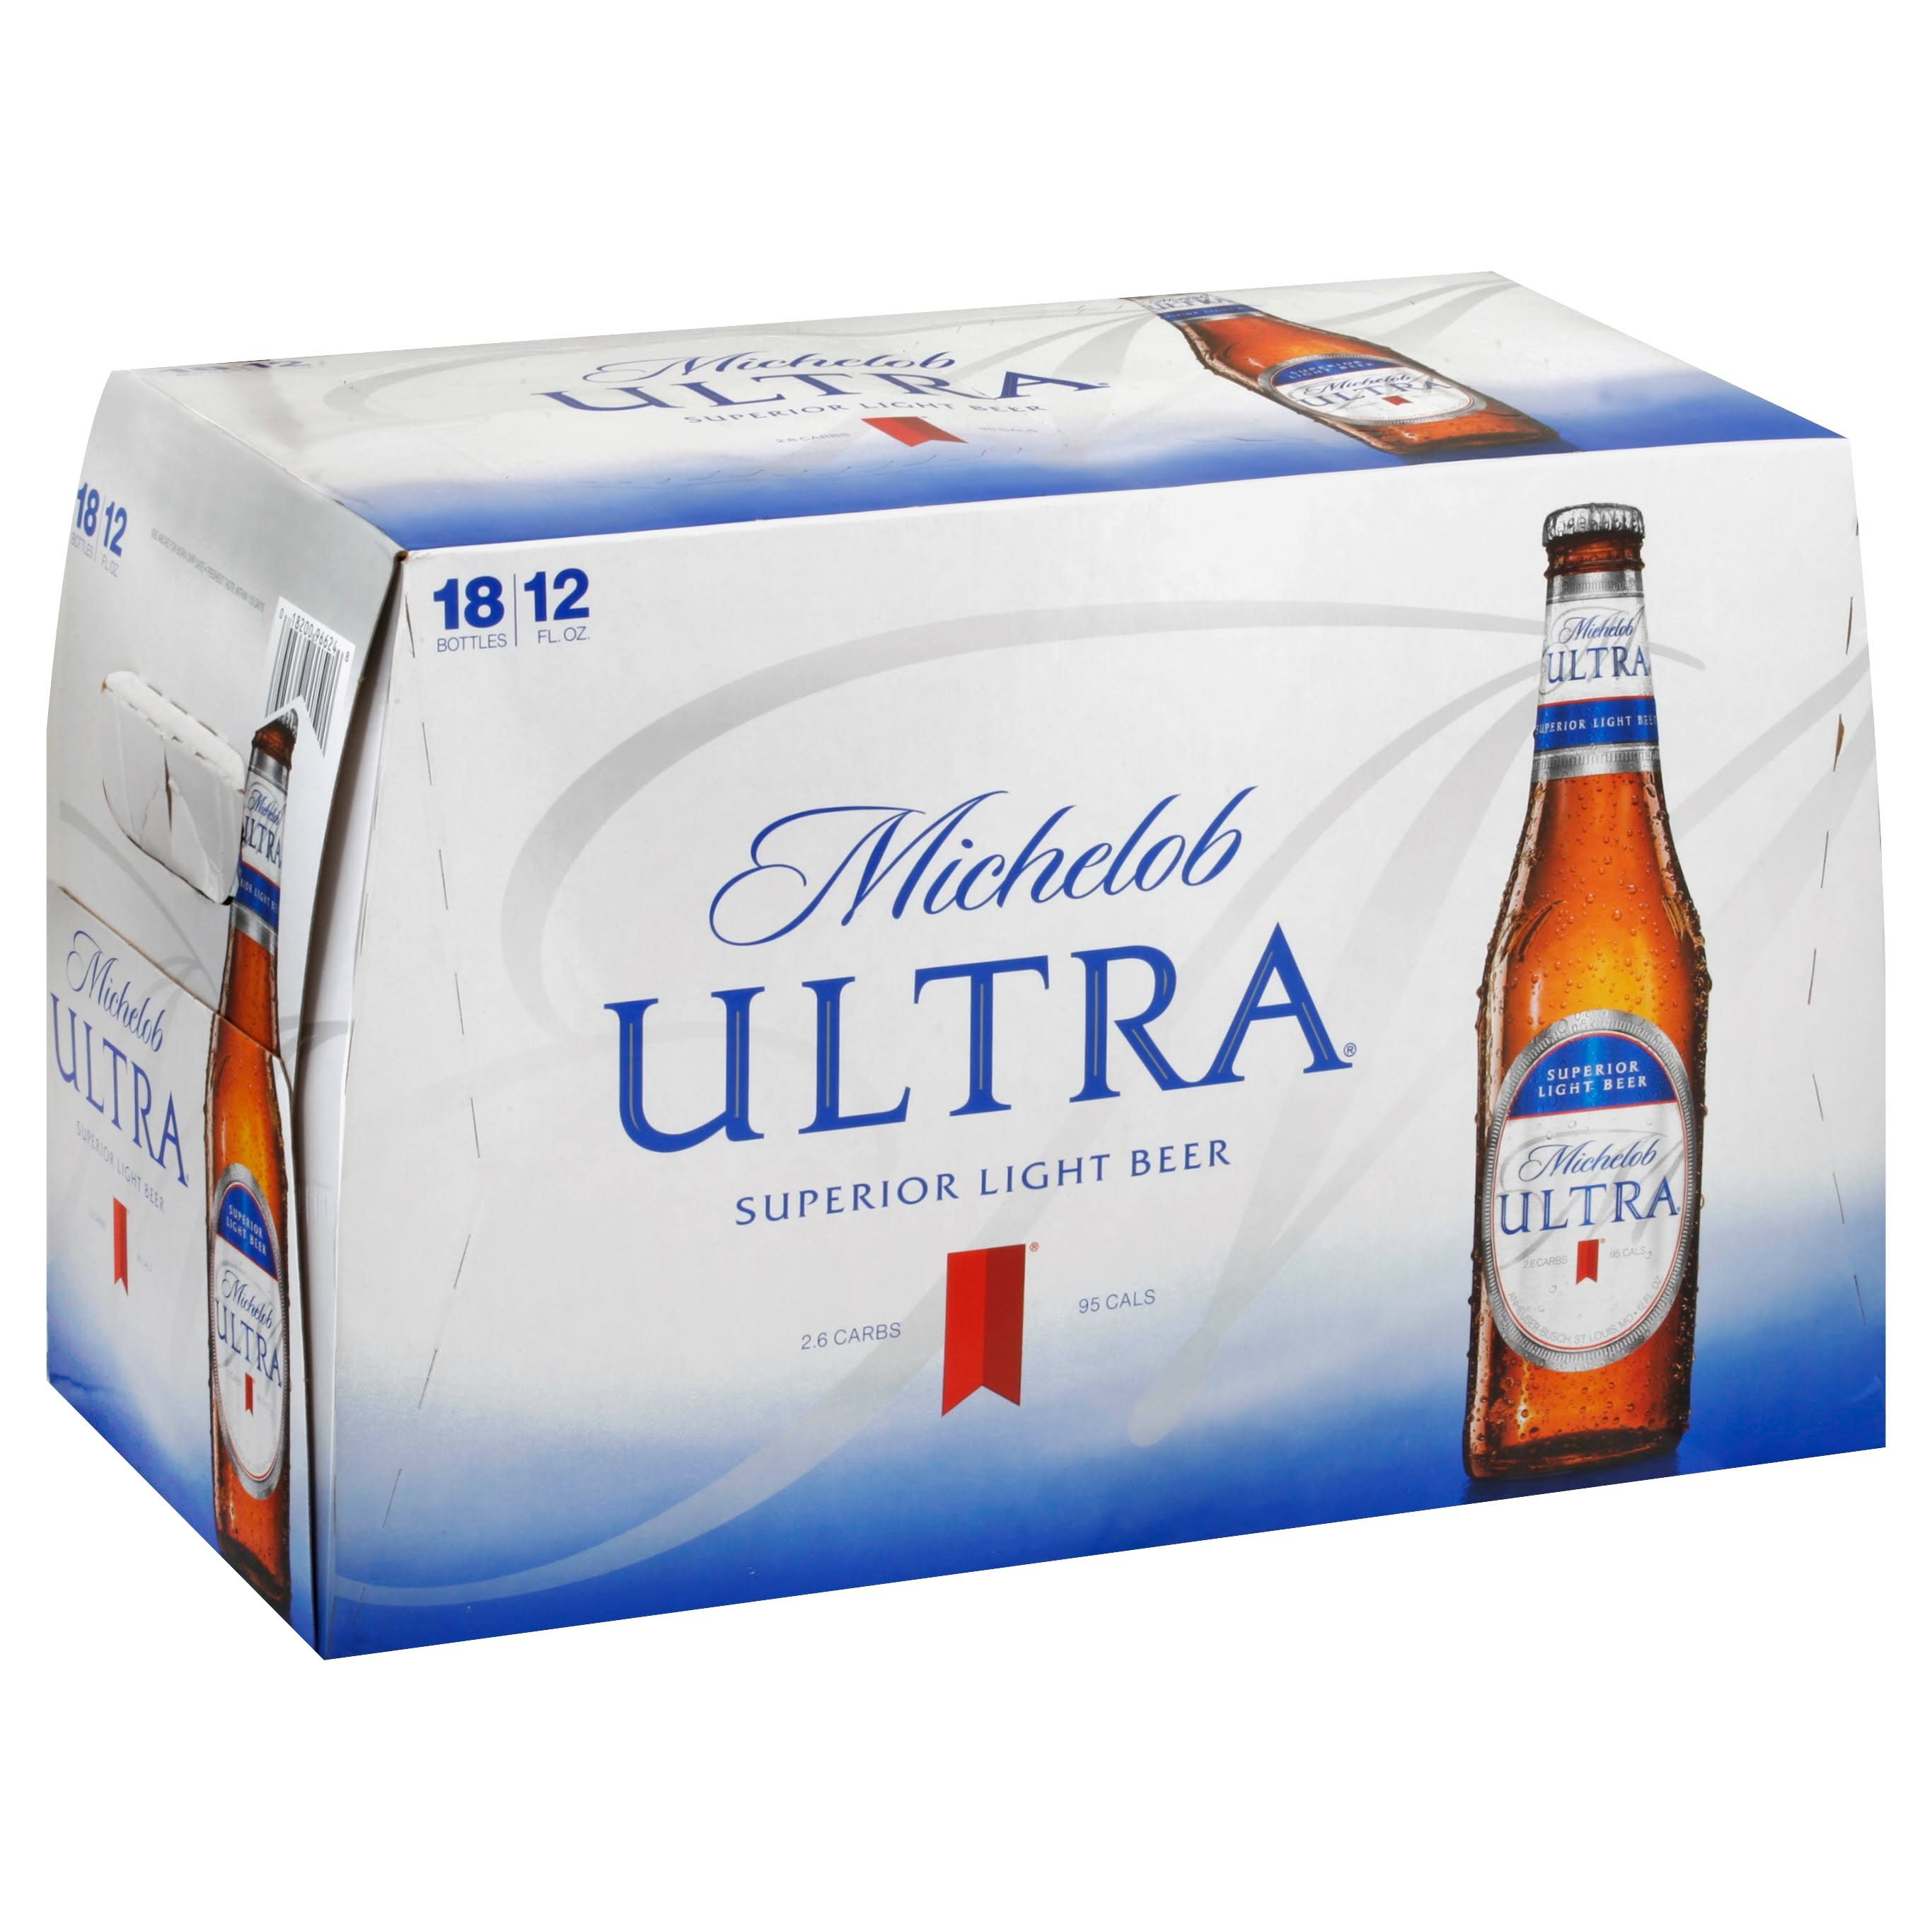 Michelob Ultra Superior Light Beer - 18 Bottles